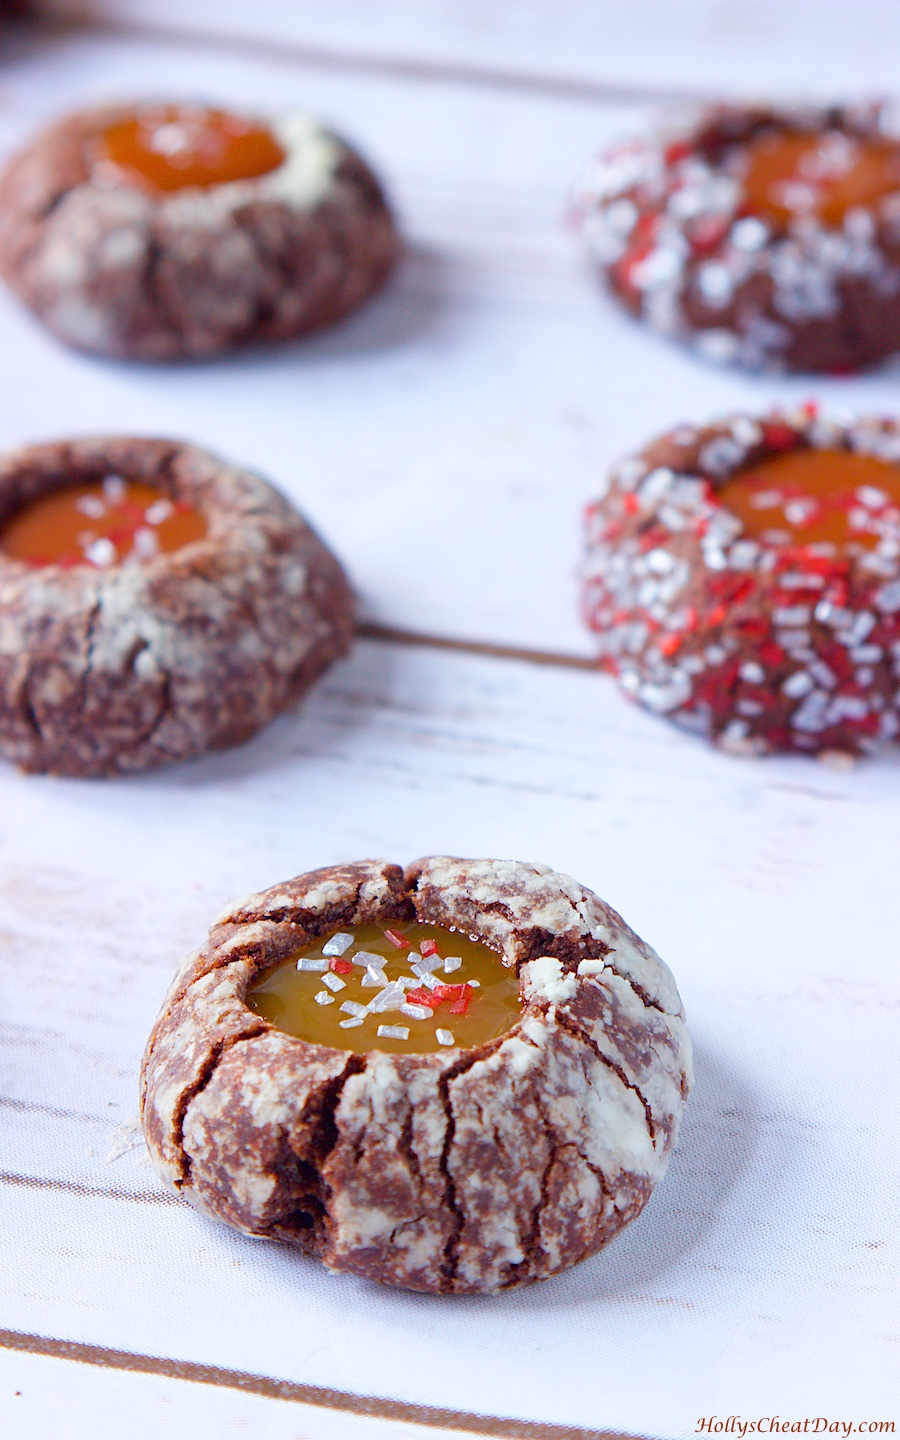 Chocolate Thumbprint Cookies w/ Caramel Sauce - HOLLY'S CHEAT DAY